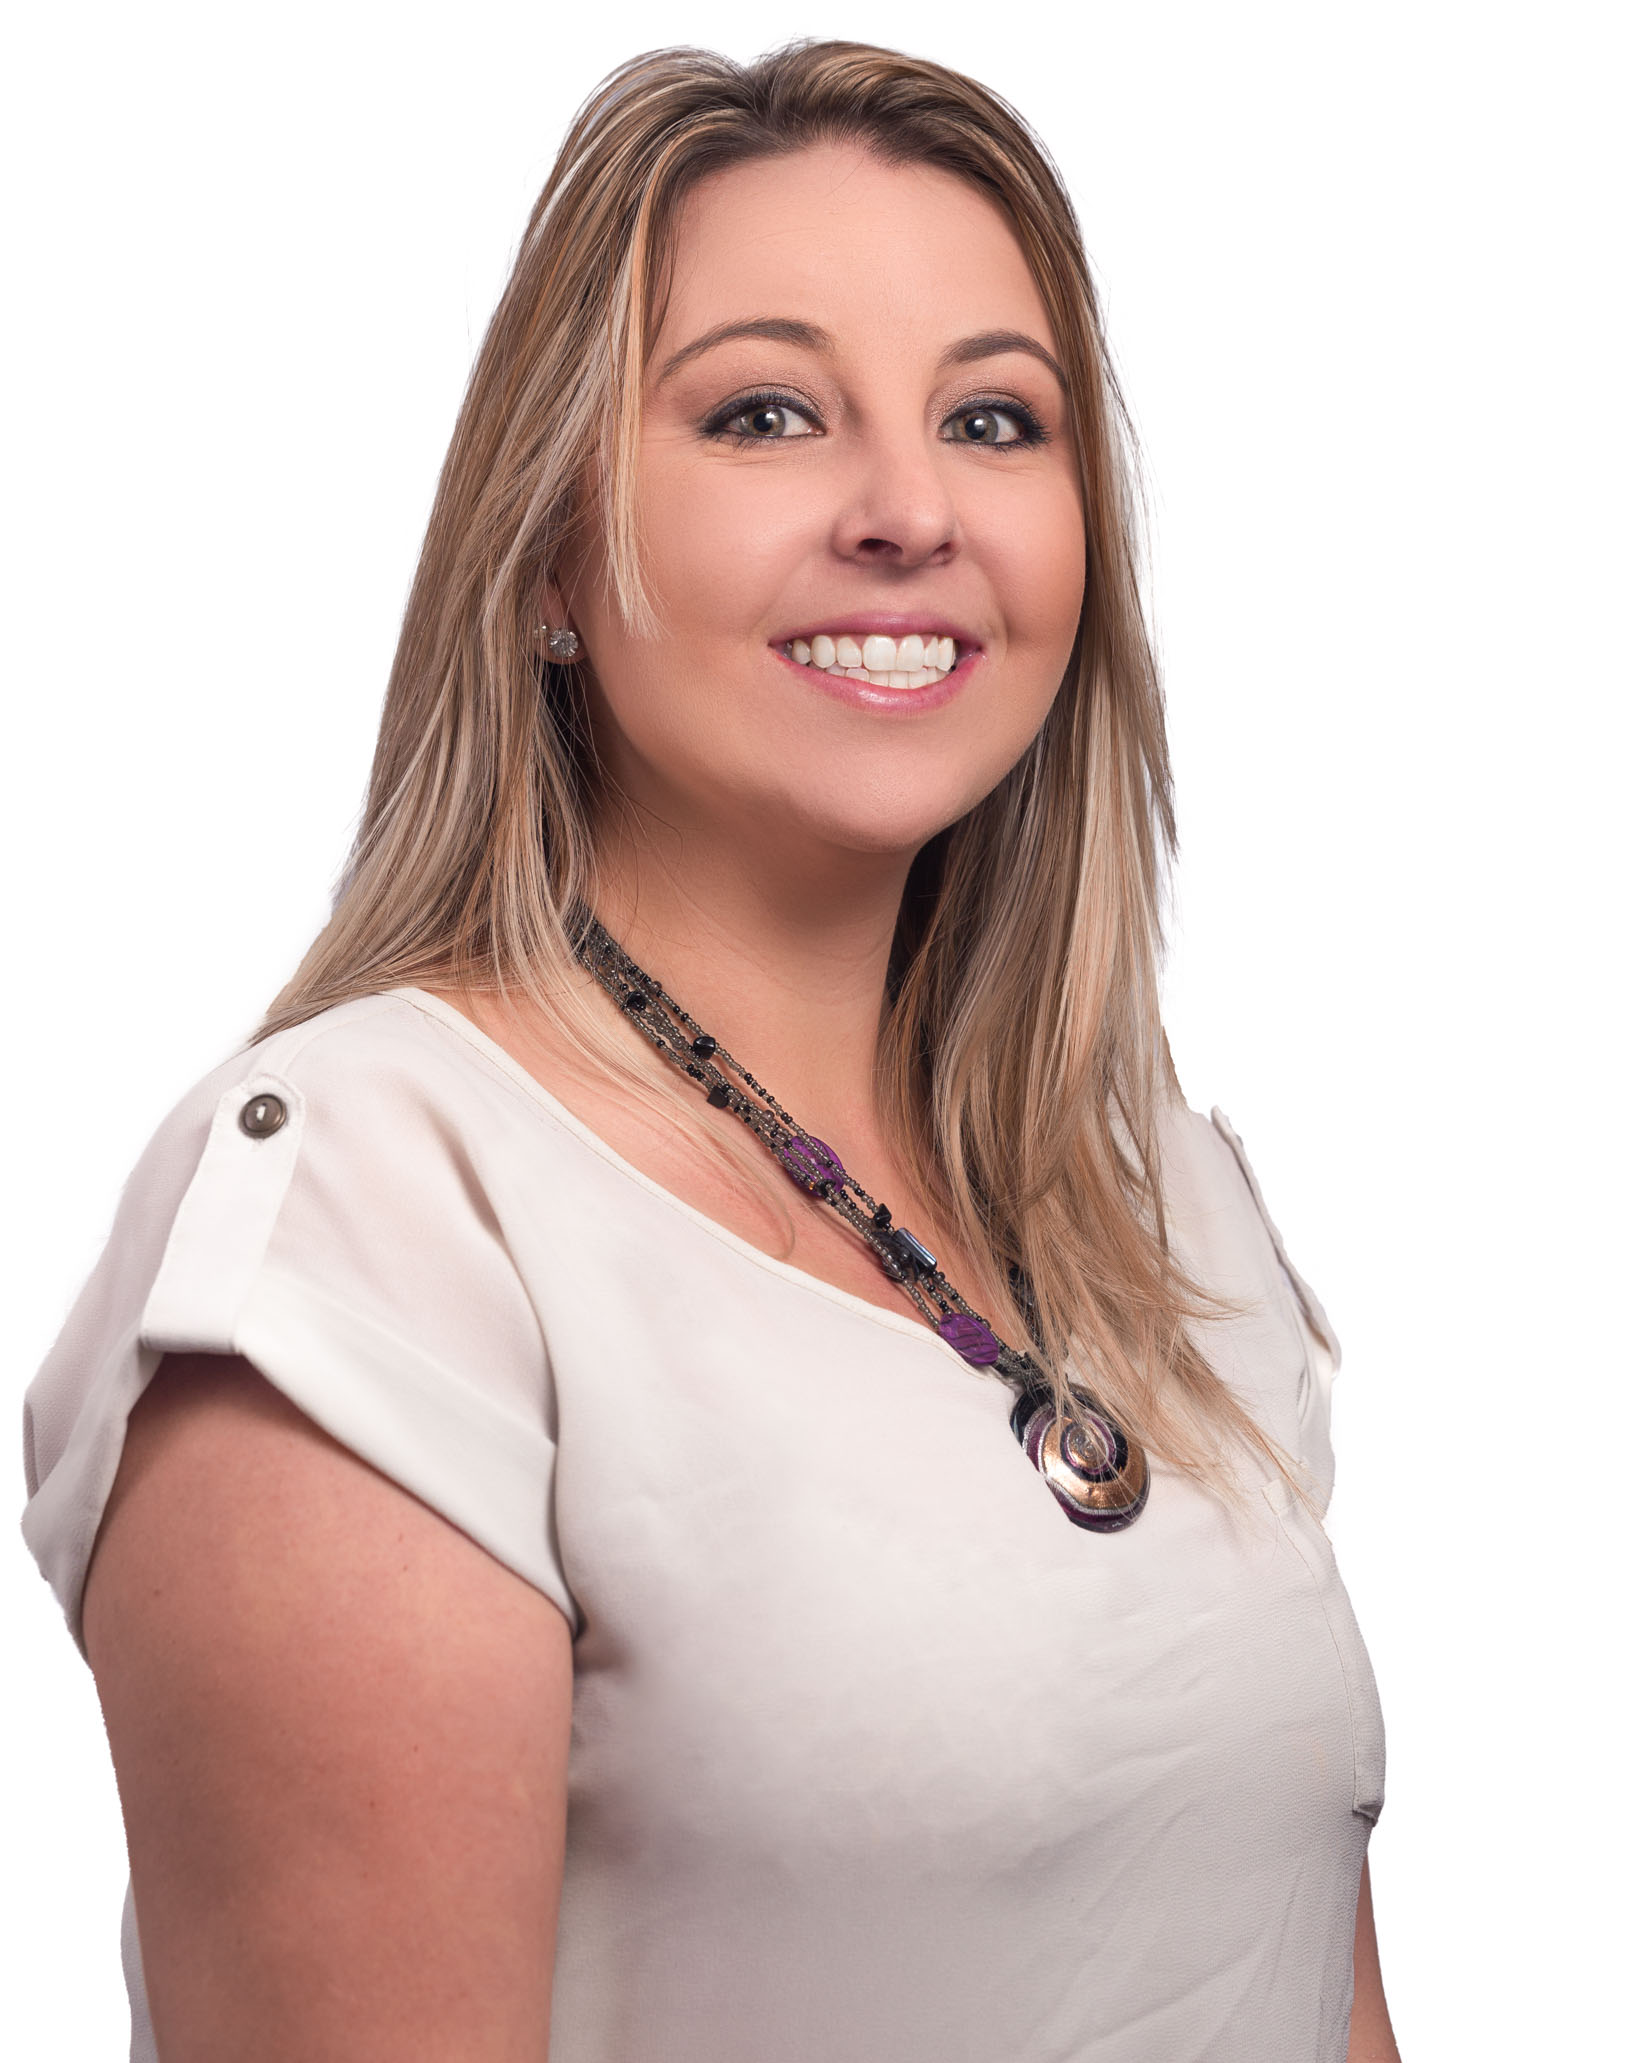 Amanda Hinkhouse - Mandy is A Clinical Thermographer and Office Administrator at ANC.Click here to learn more about Amanda